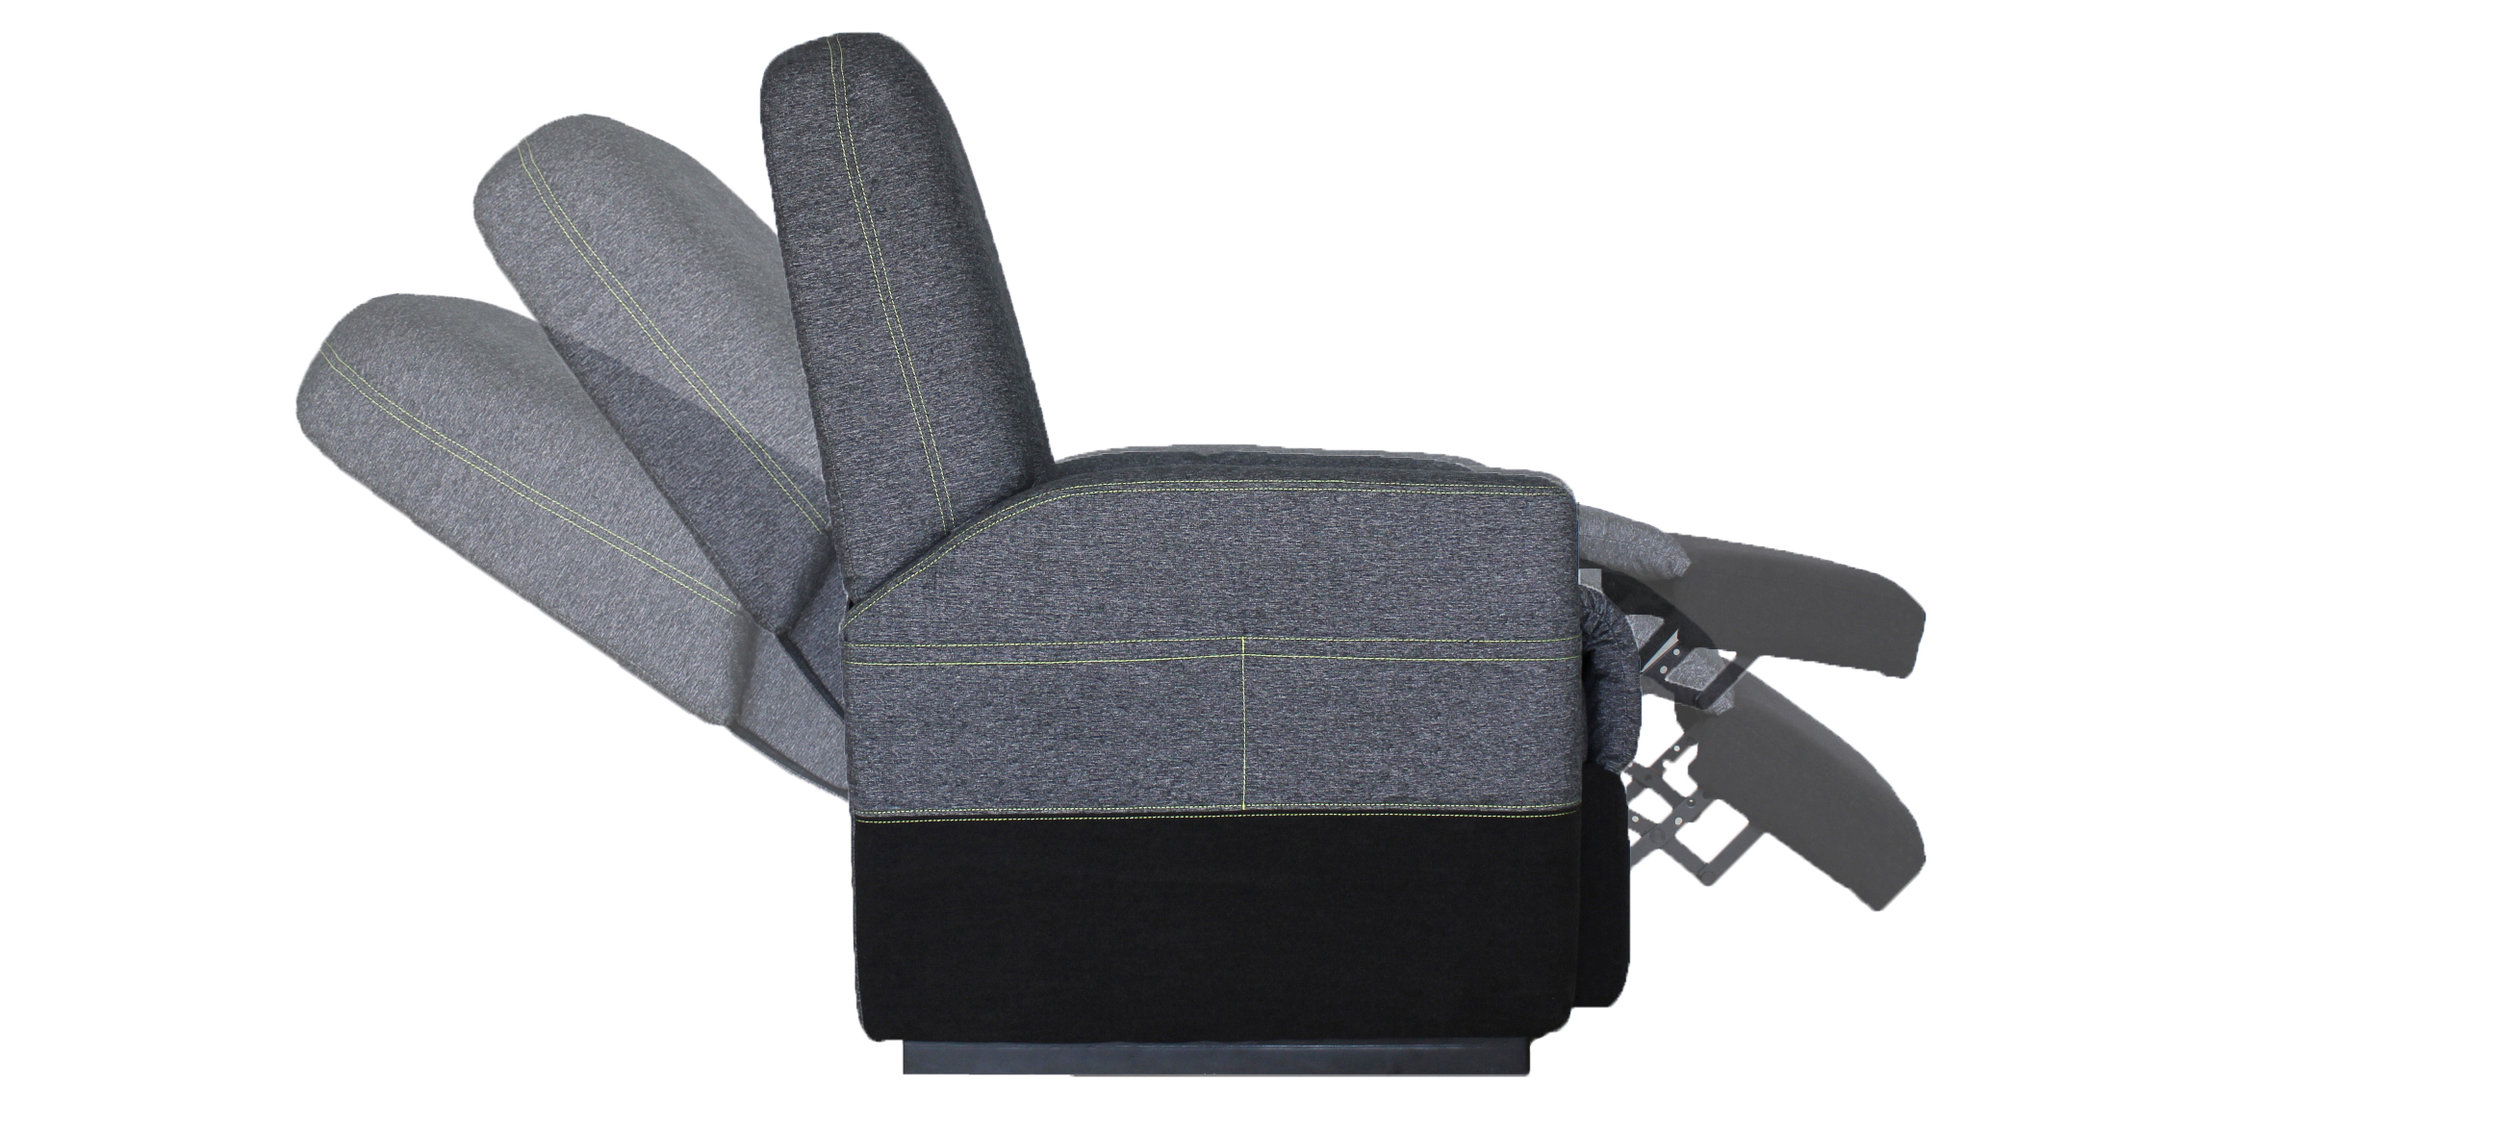 Design lift chair